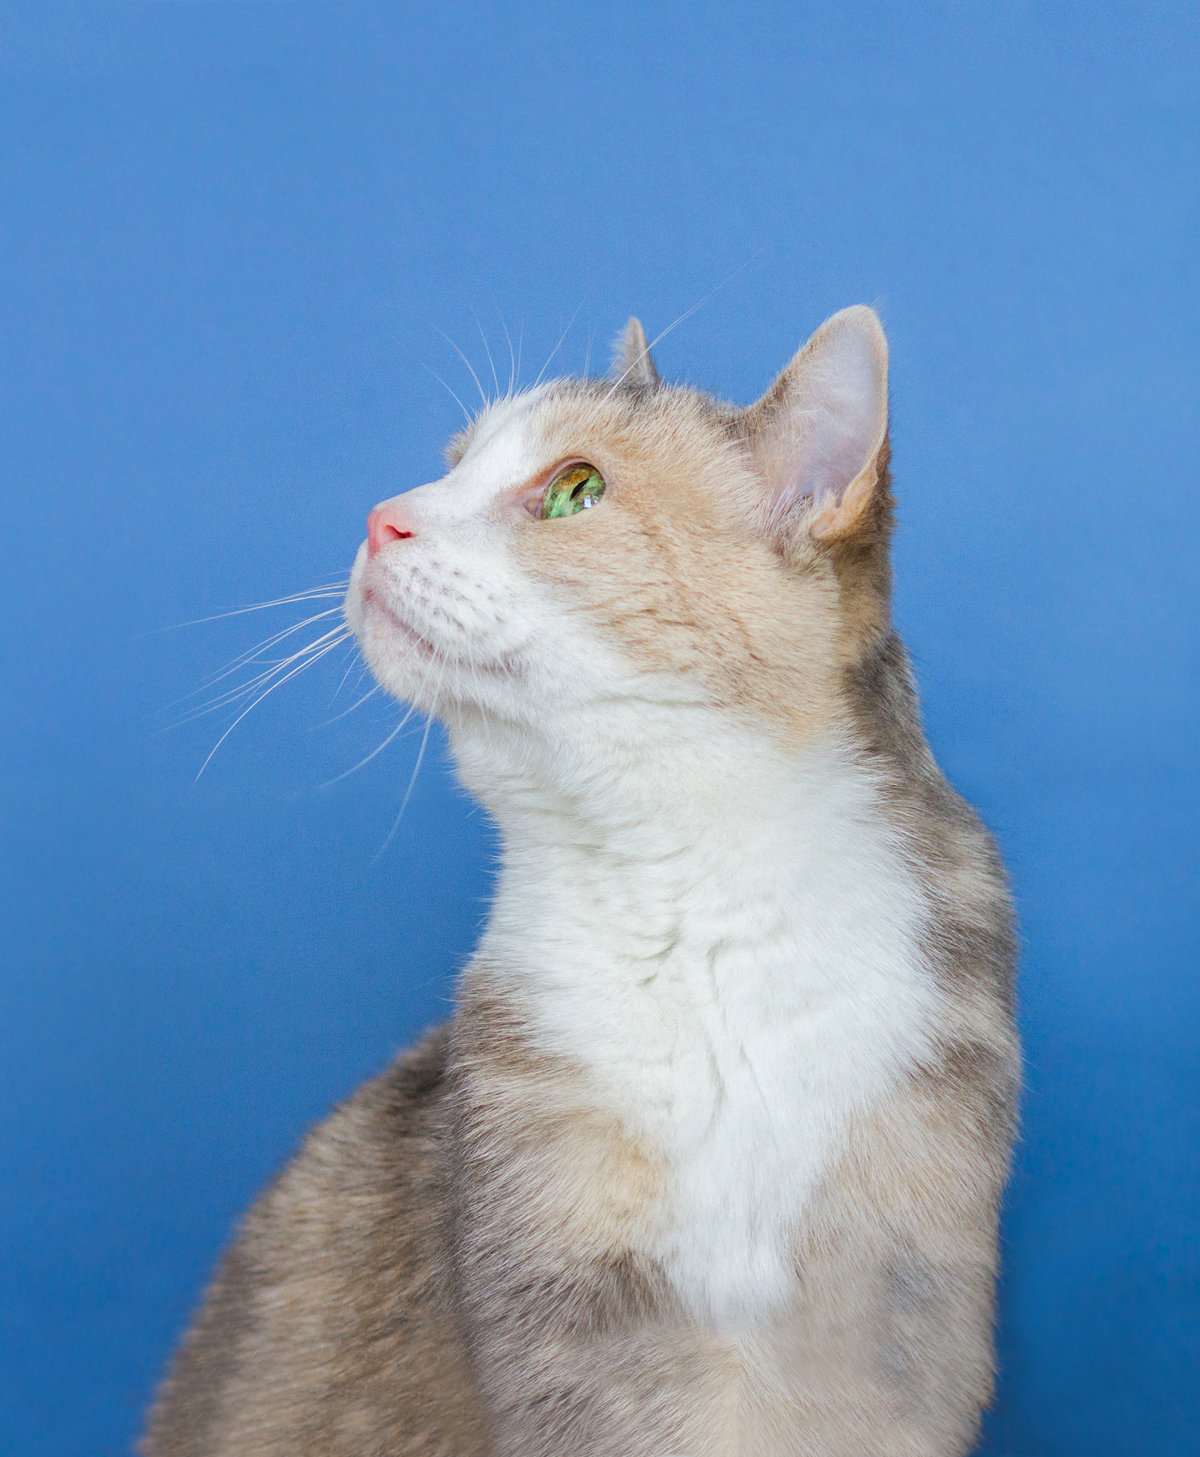 Cat Photographed On Blue Background Looking Up